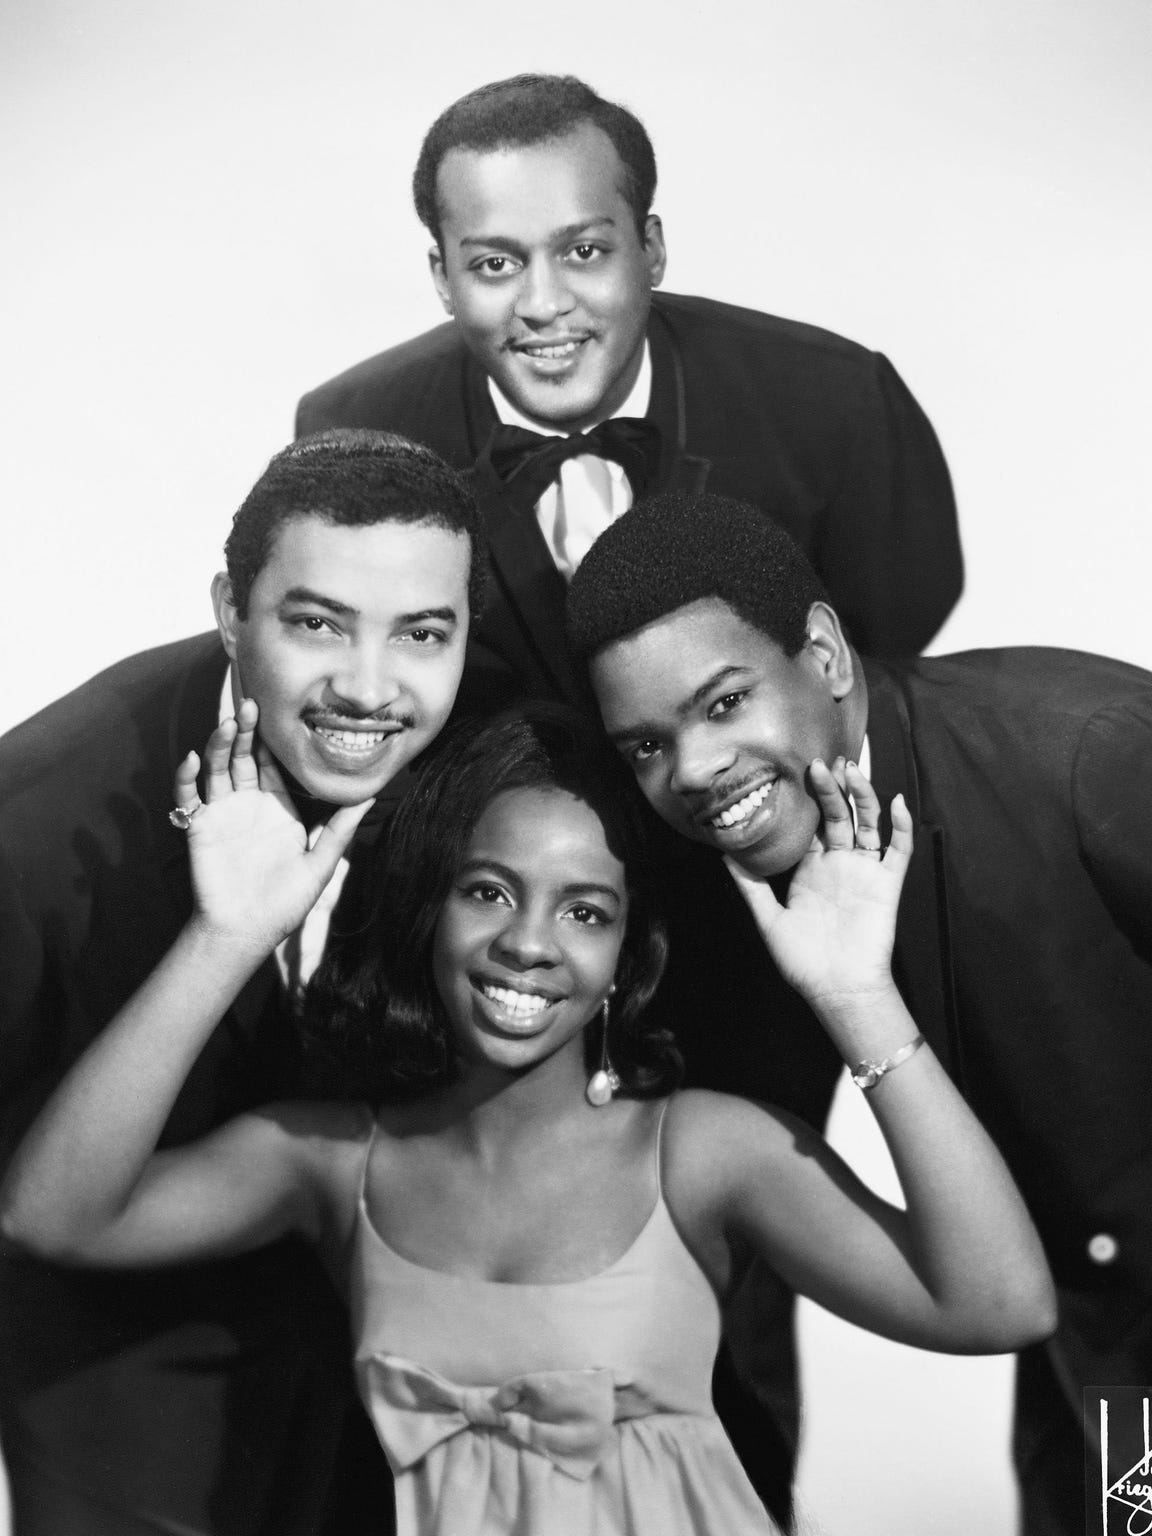 Gladys Knight & the Pips in 1967